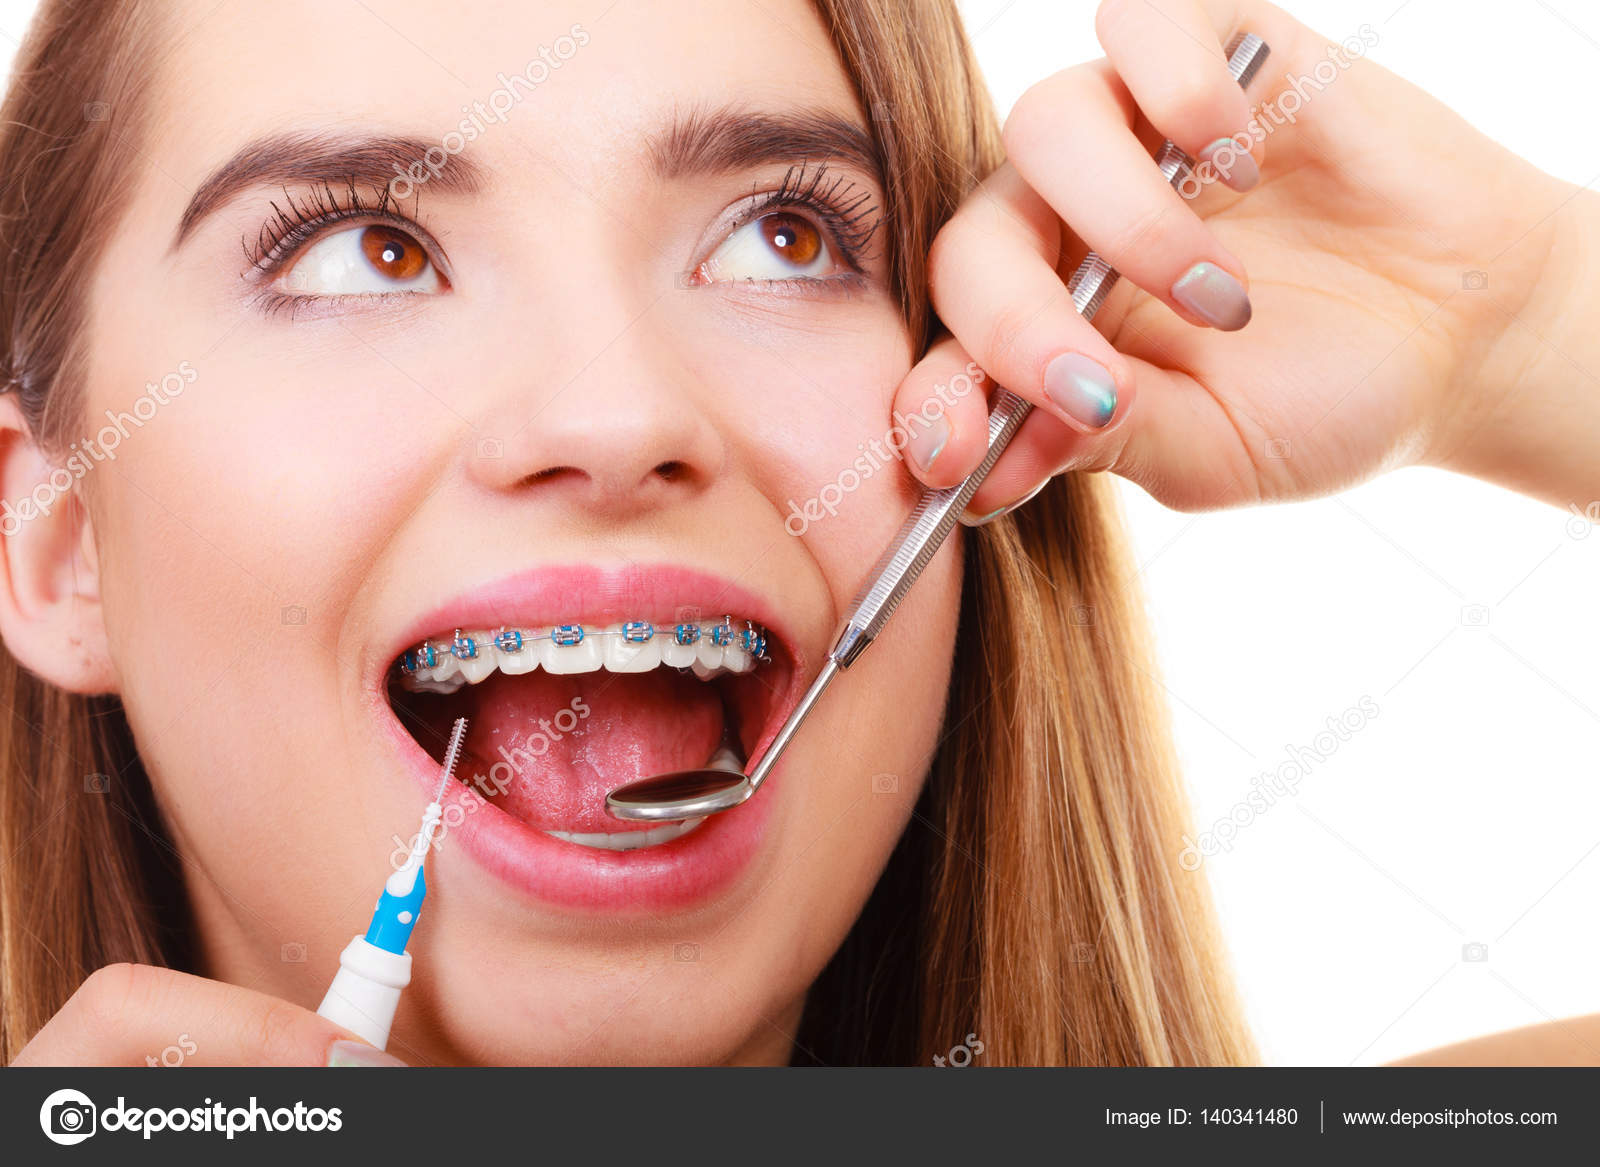 depositphotos_140341480-stock-photo-woman-smiling-cleaning-teeth-with.jpg